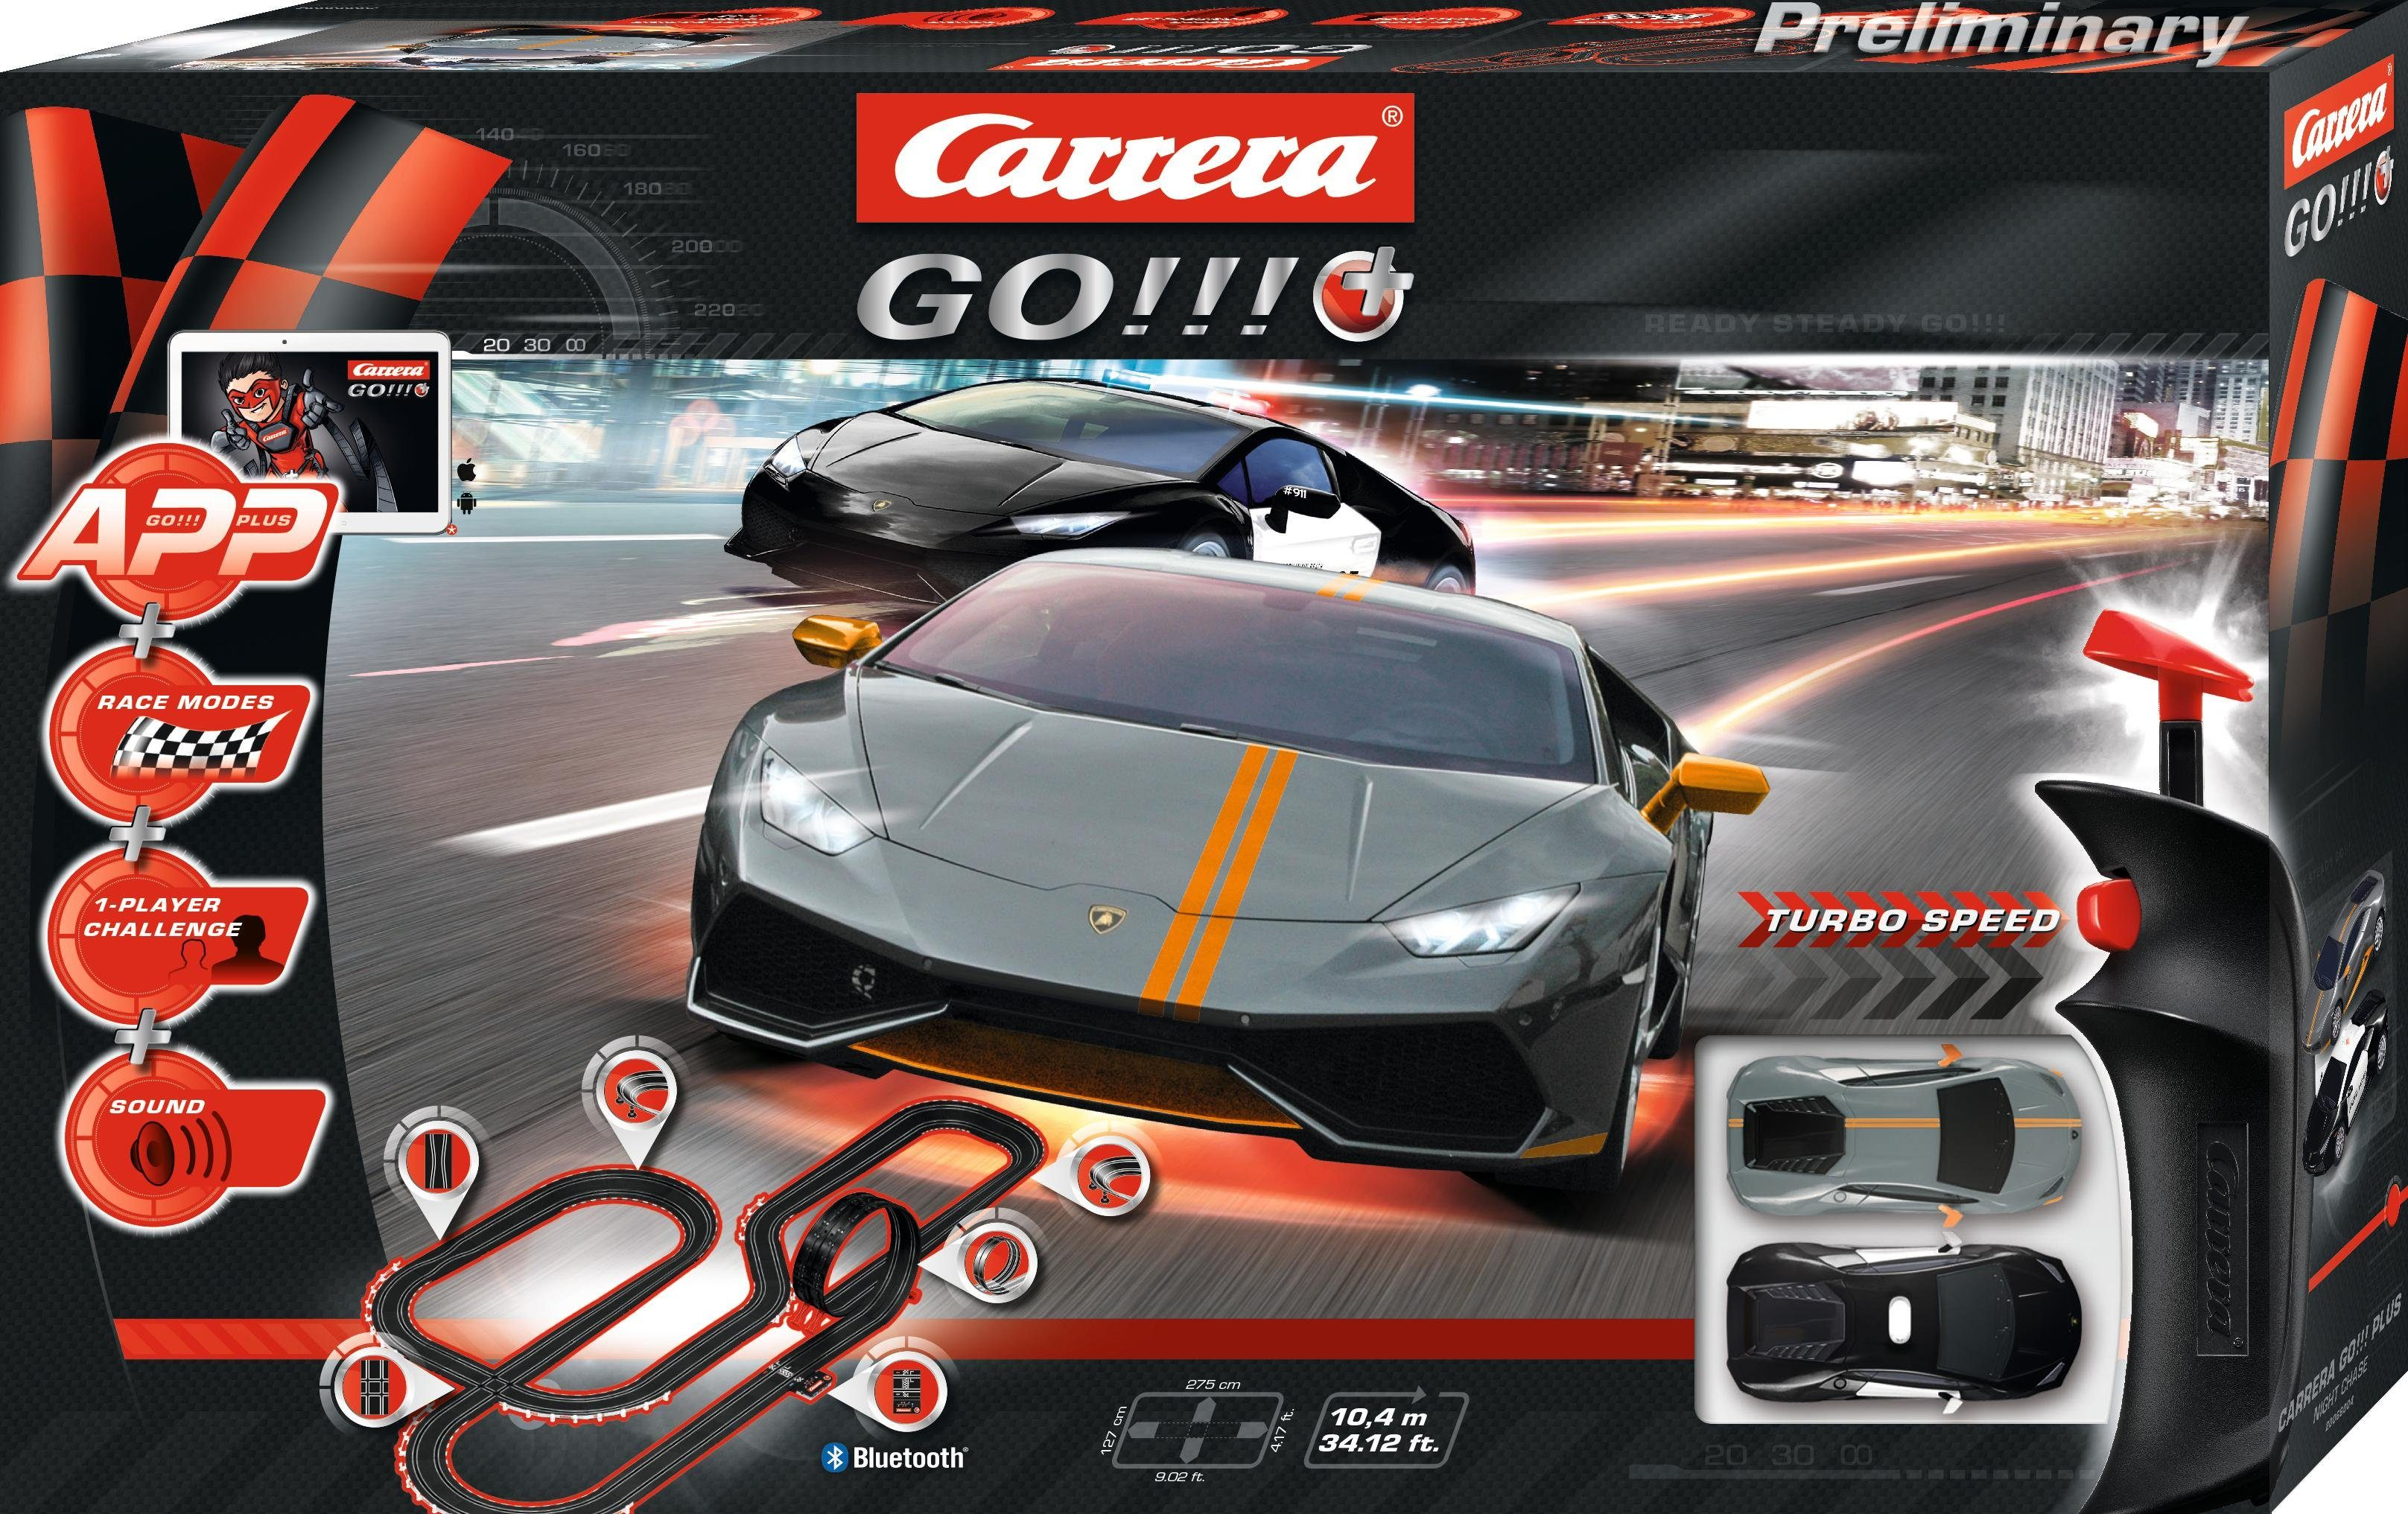 Carrera Autorennbahn, »Carrera GO!!! Plus Night Chase«